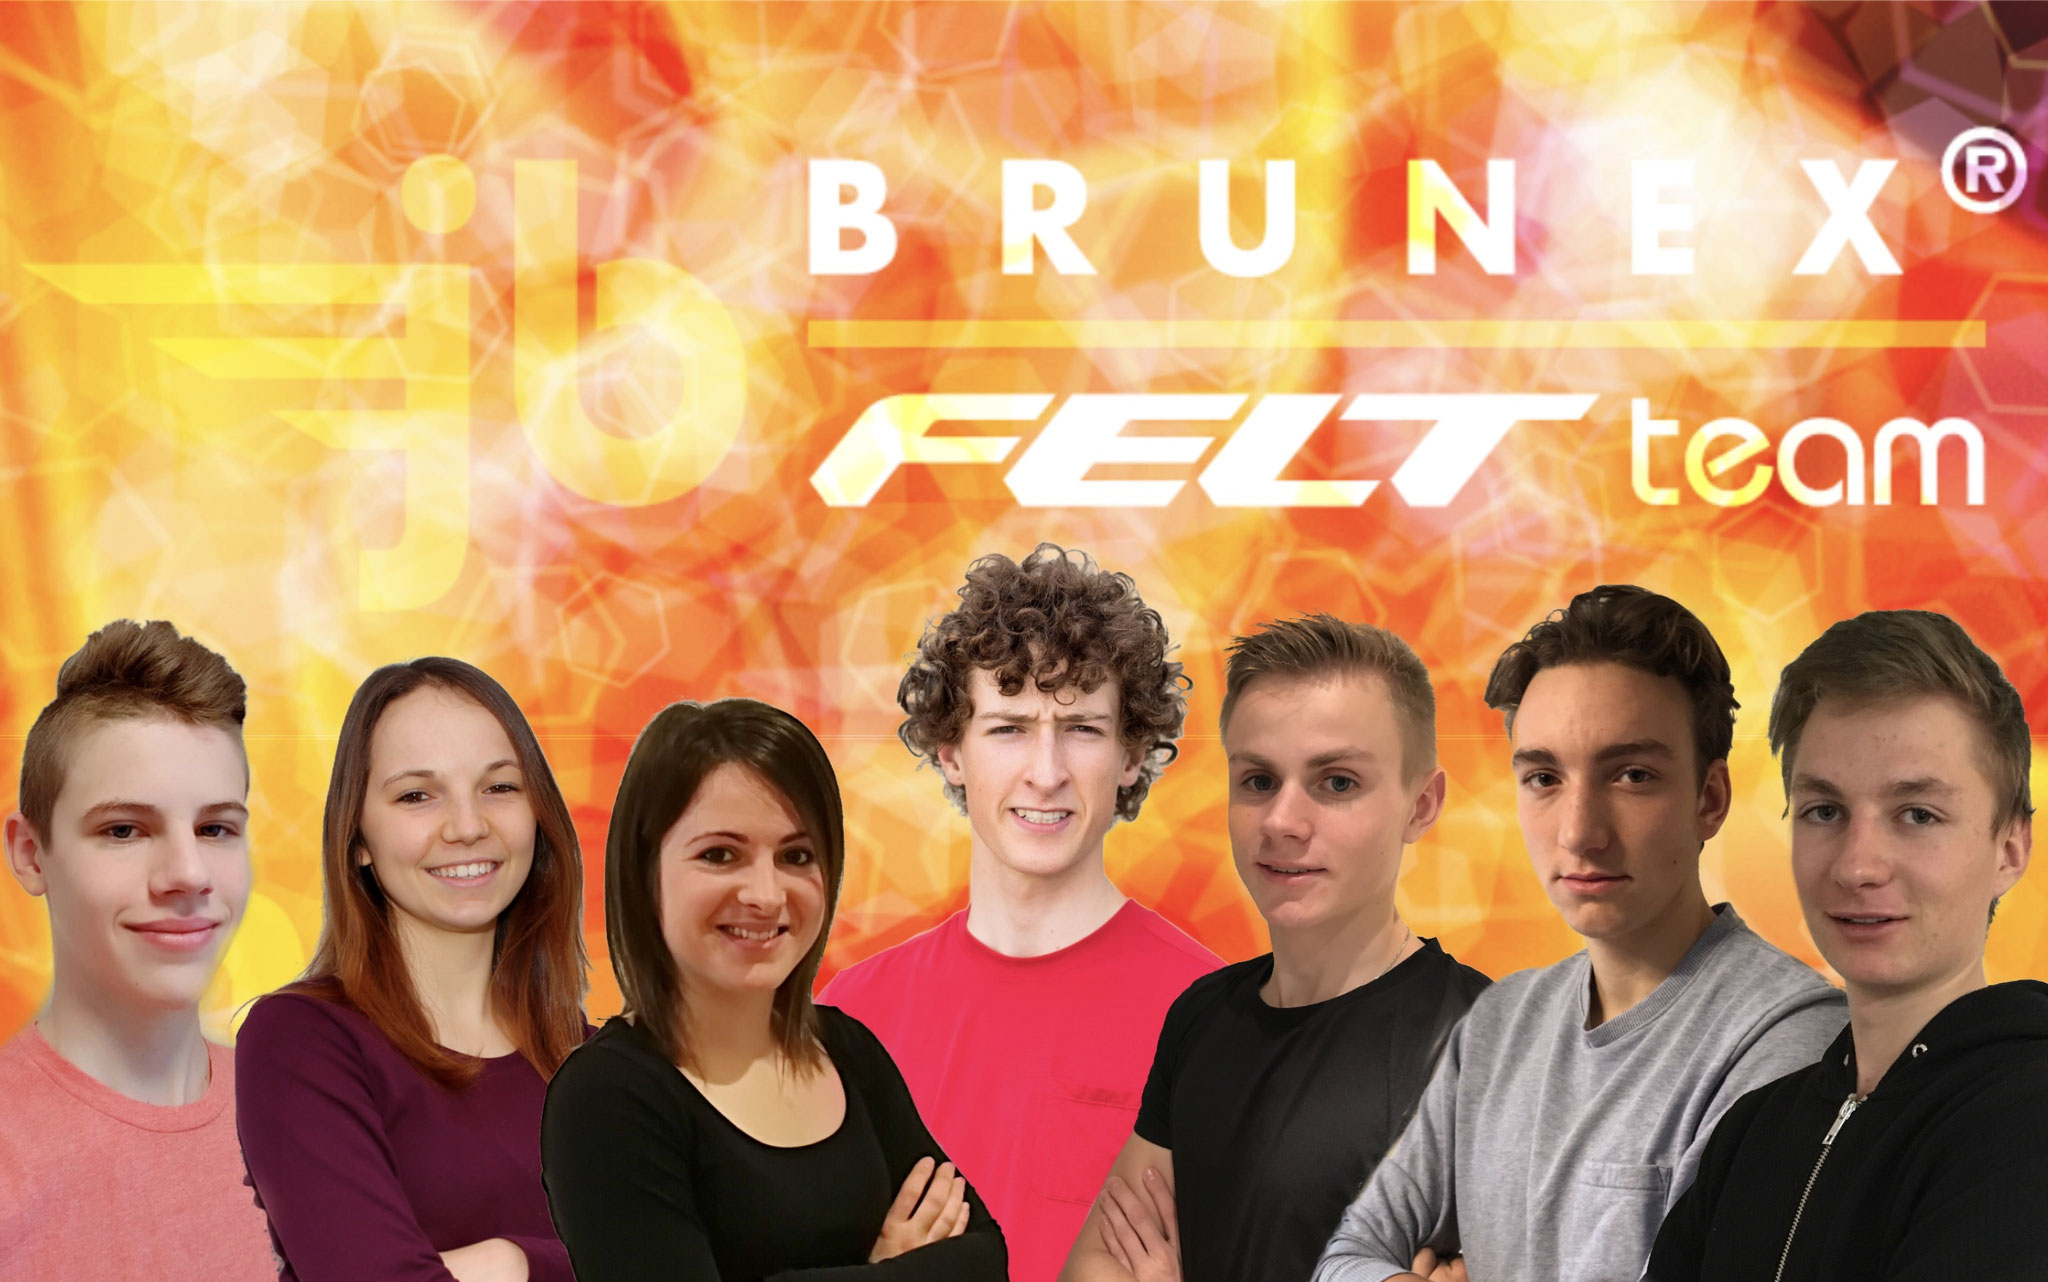 jb BRUNEX Felt Factory Team 2018